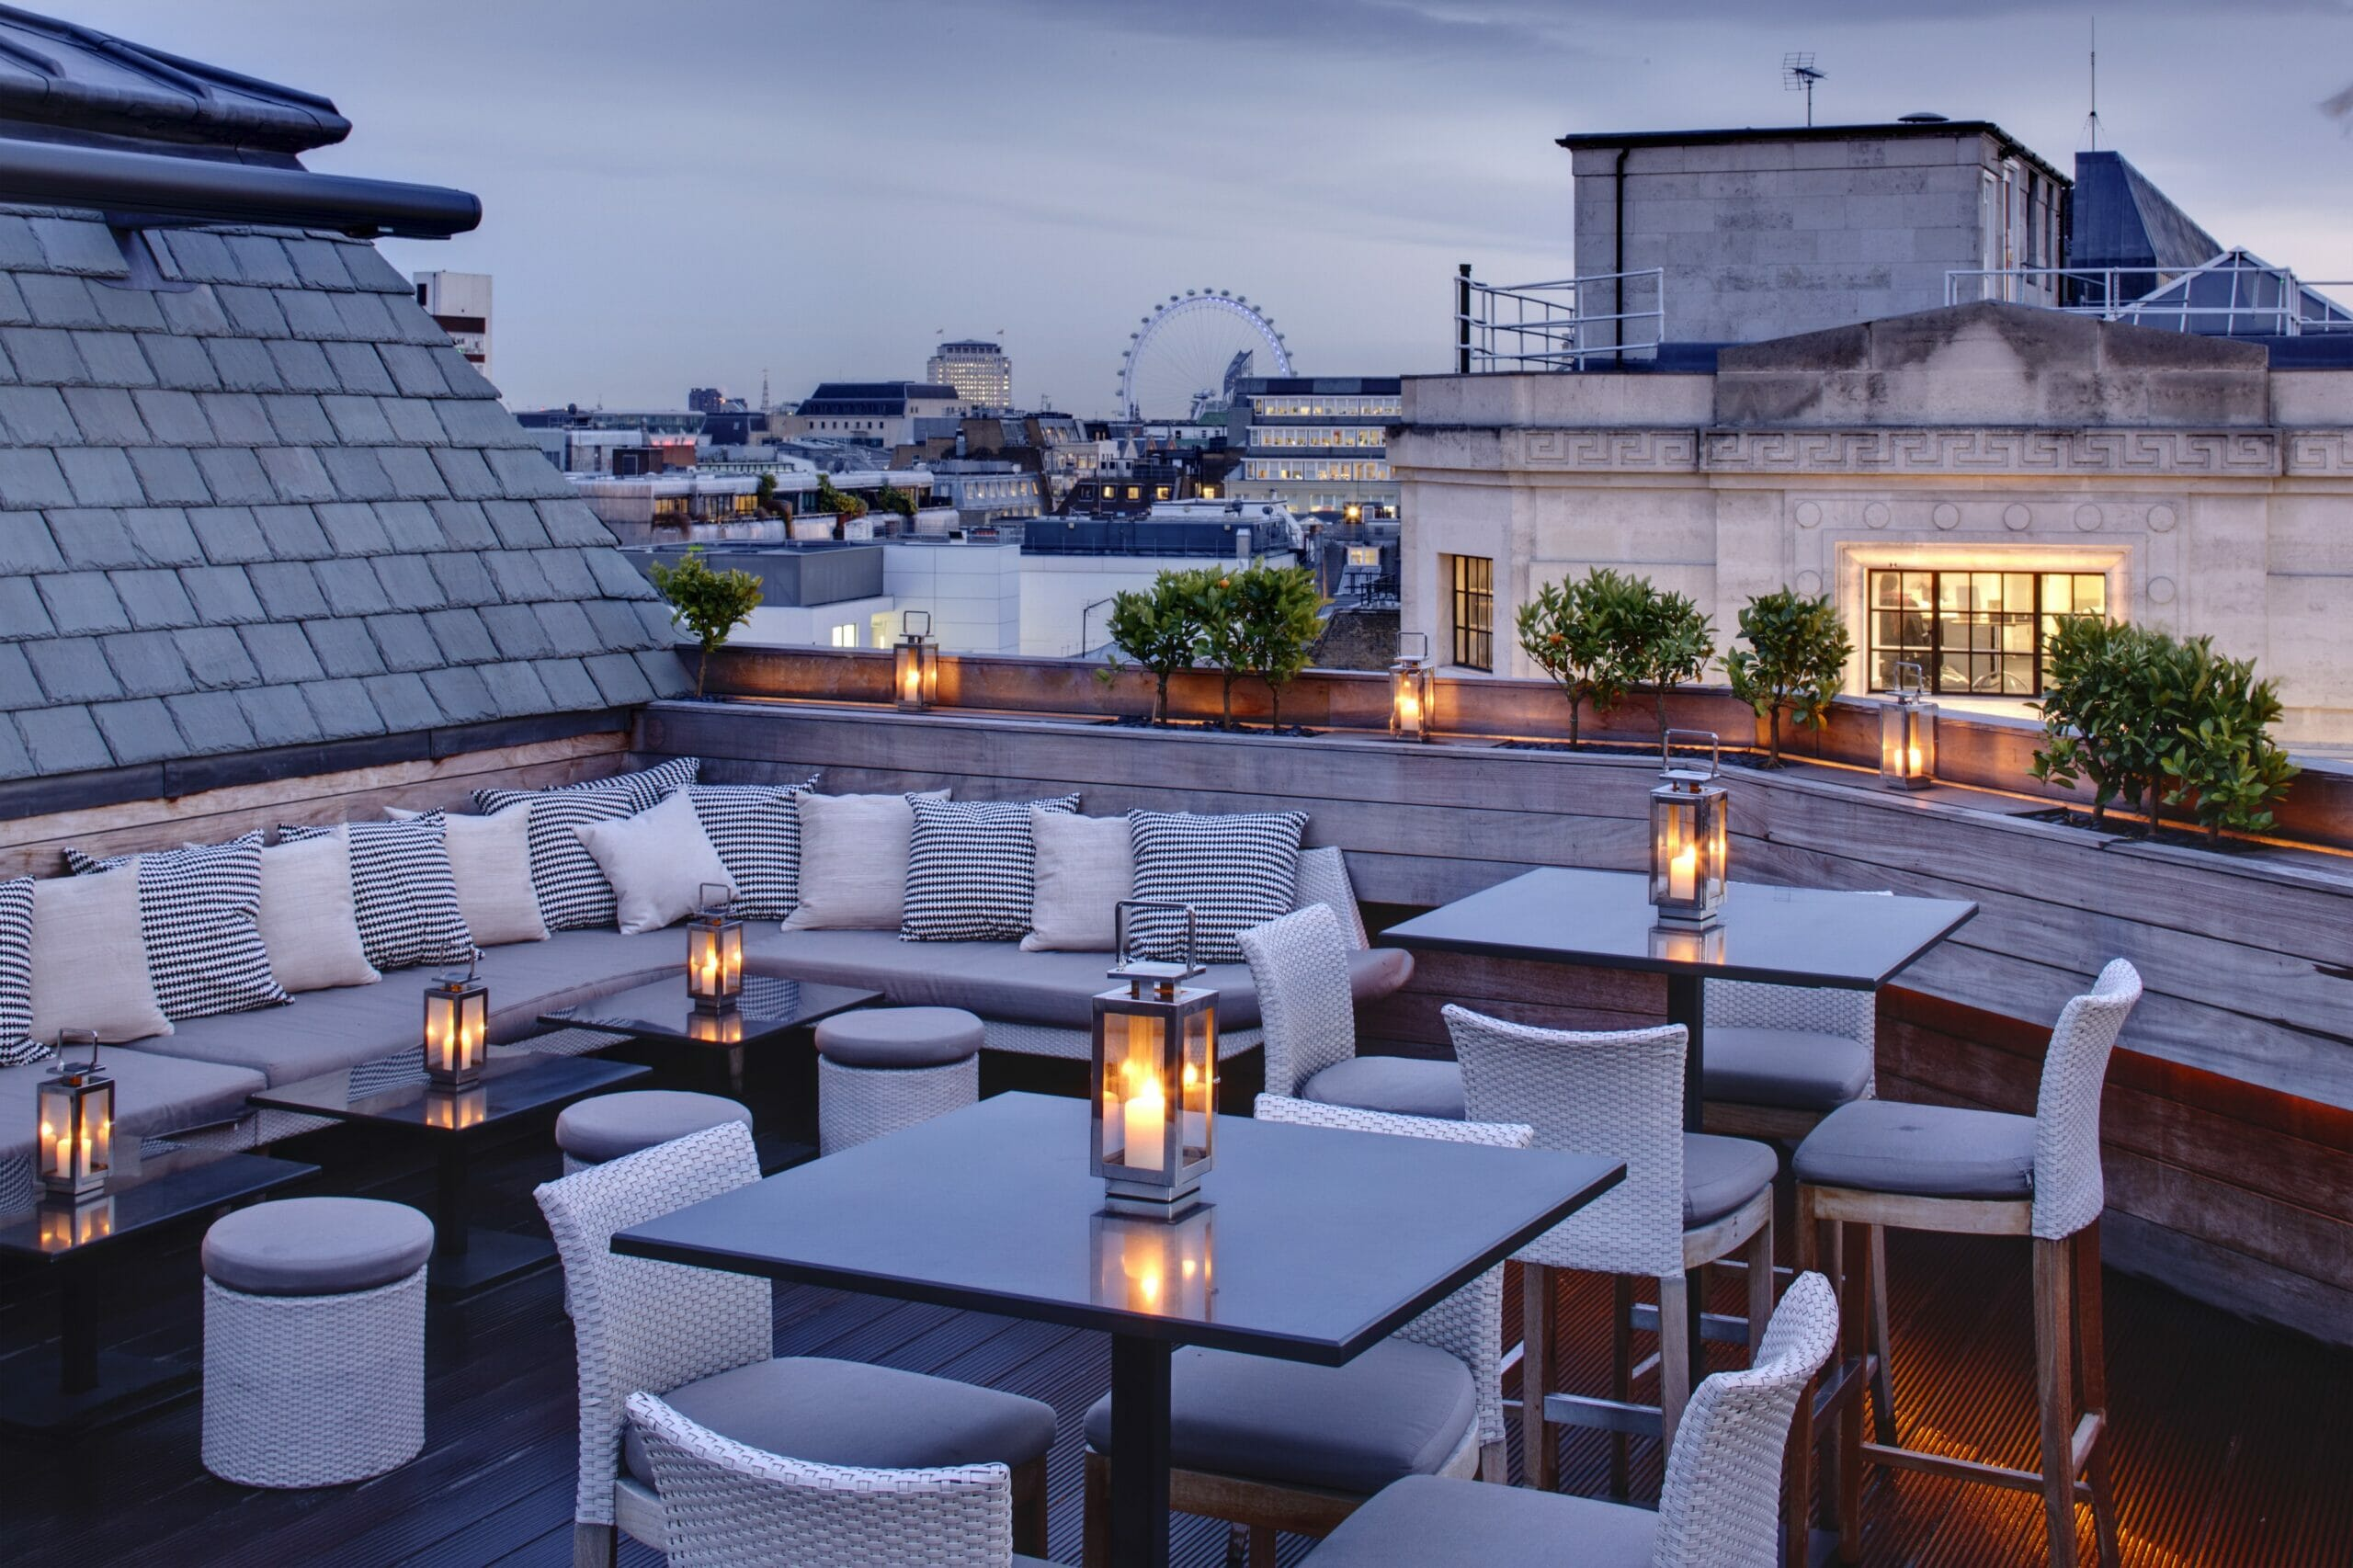 Rooftop Bars In London 2020 Sky High Activity Bars Candlelit Terraces